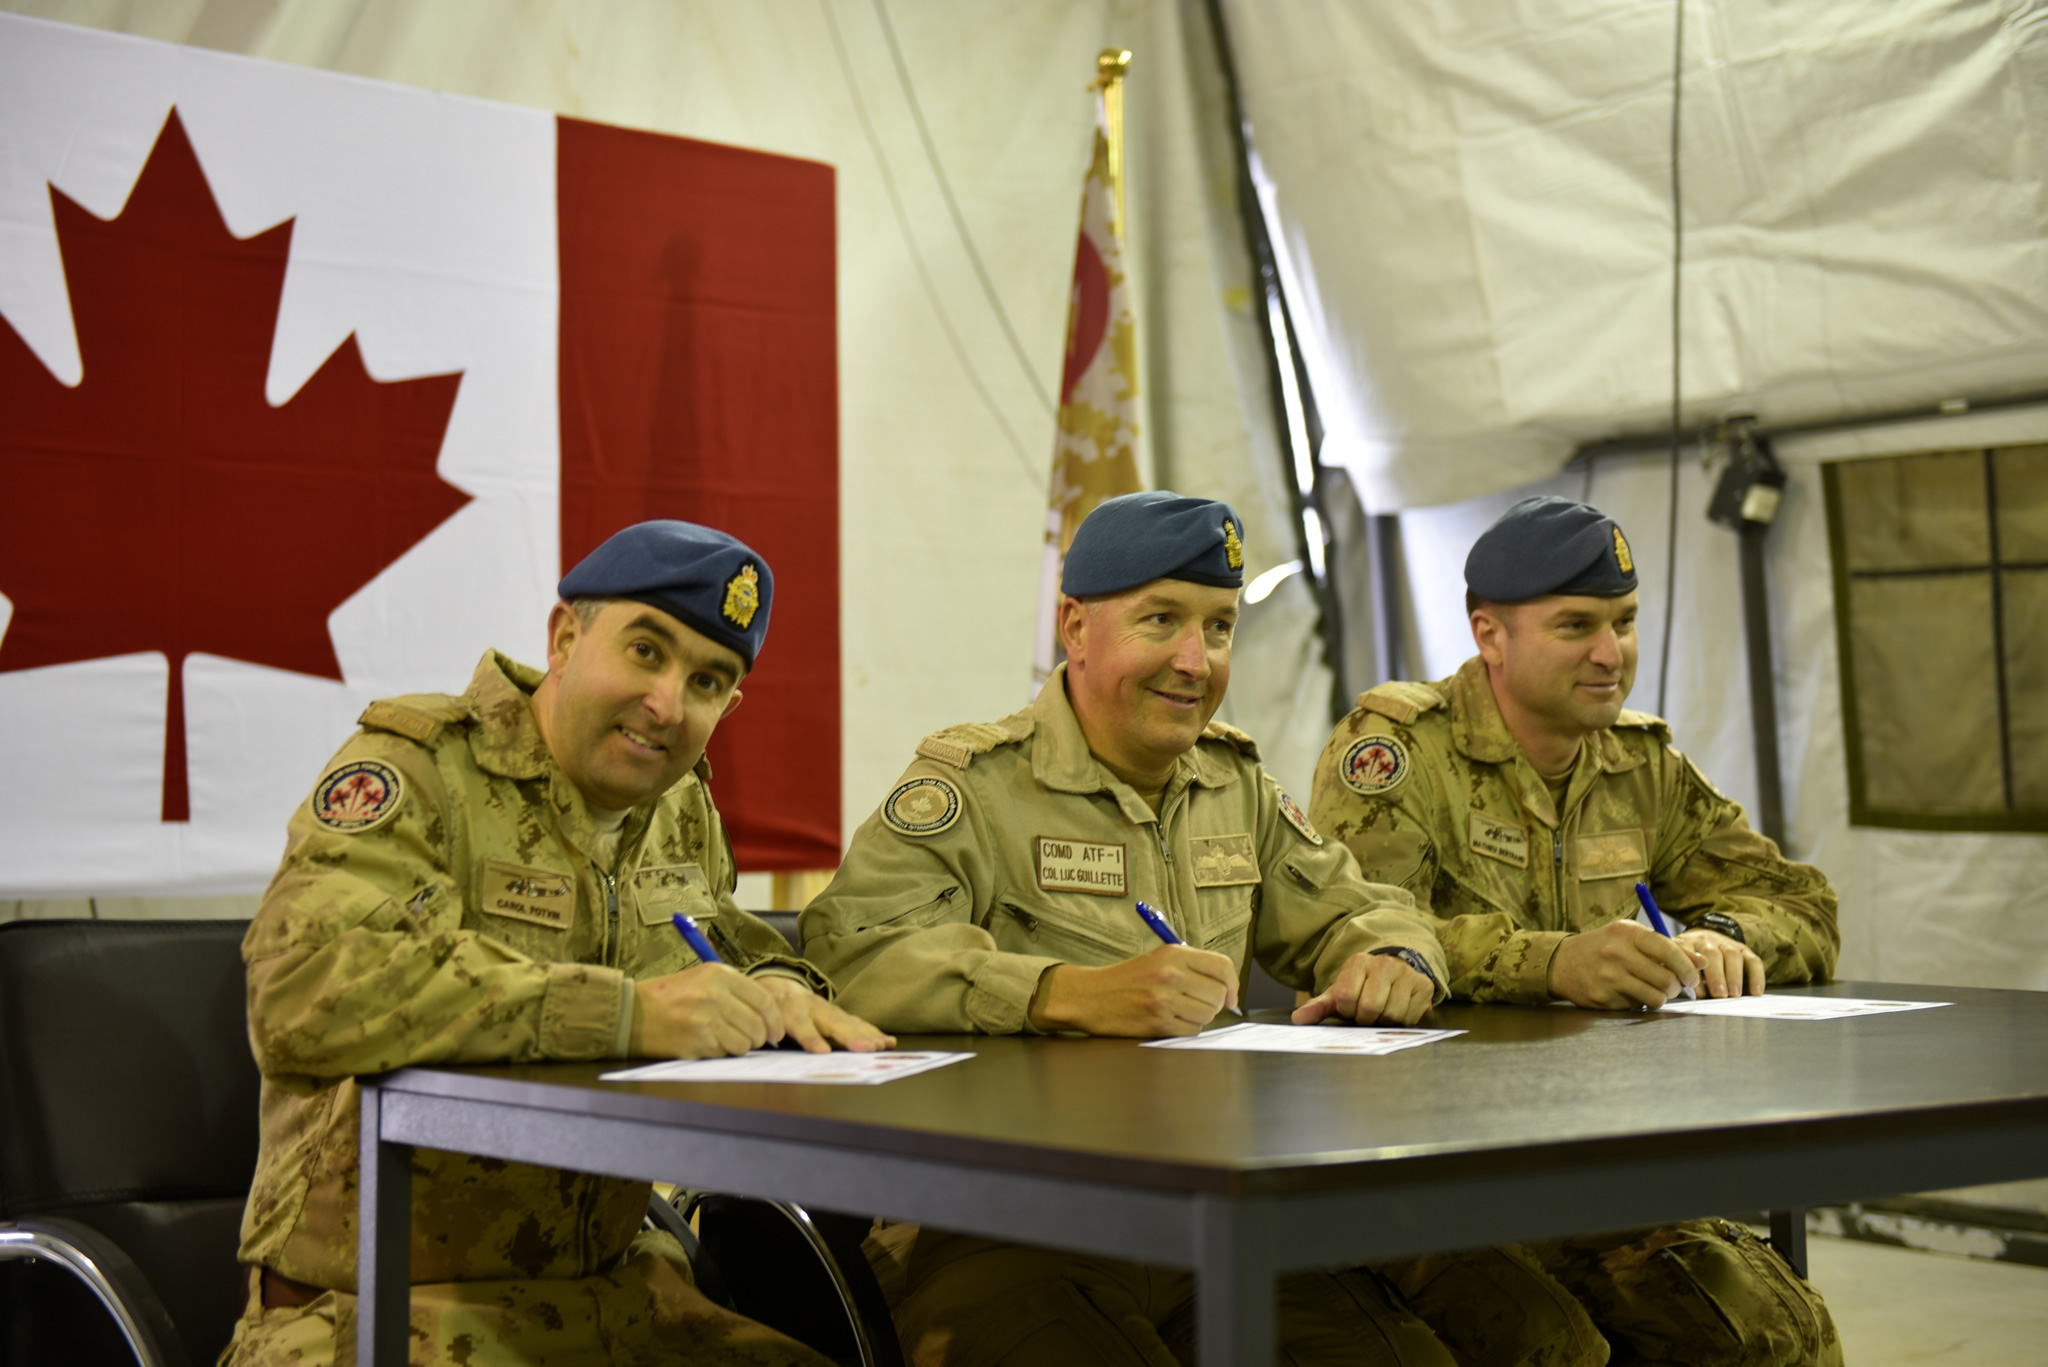 Three men in tan uniforms sit at a table in front of a Canadian flag and sign papers